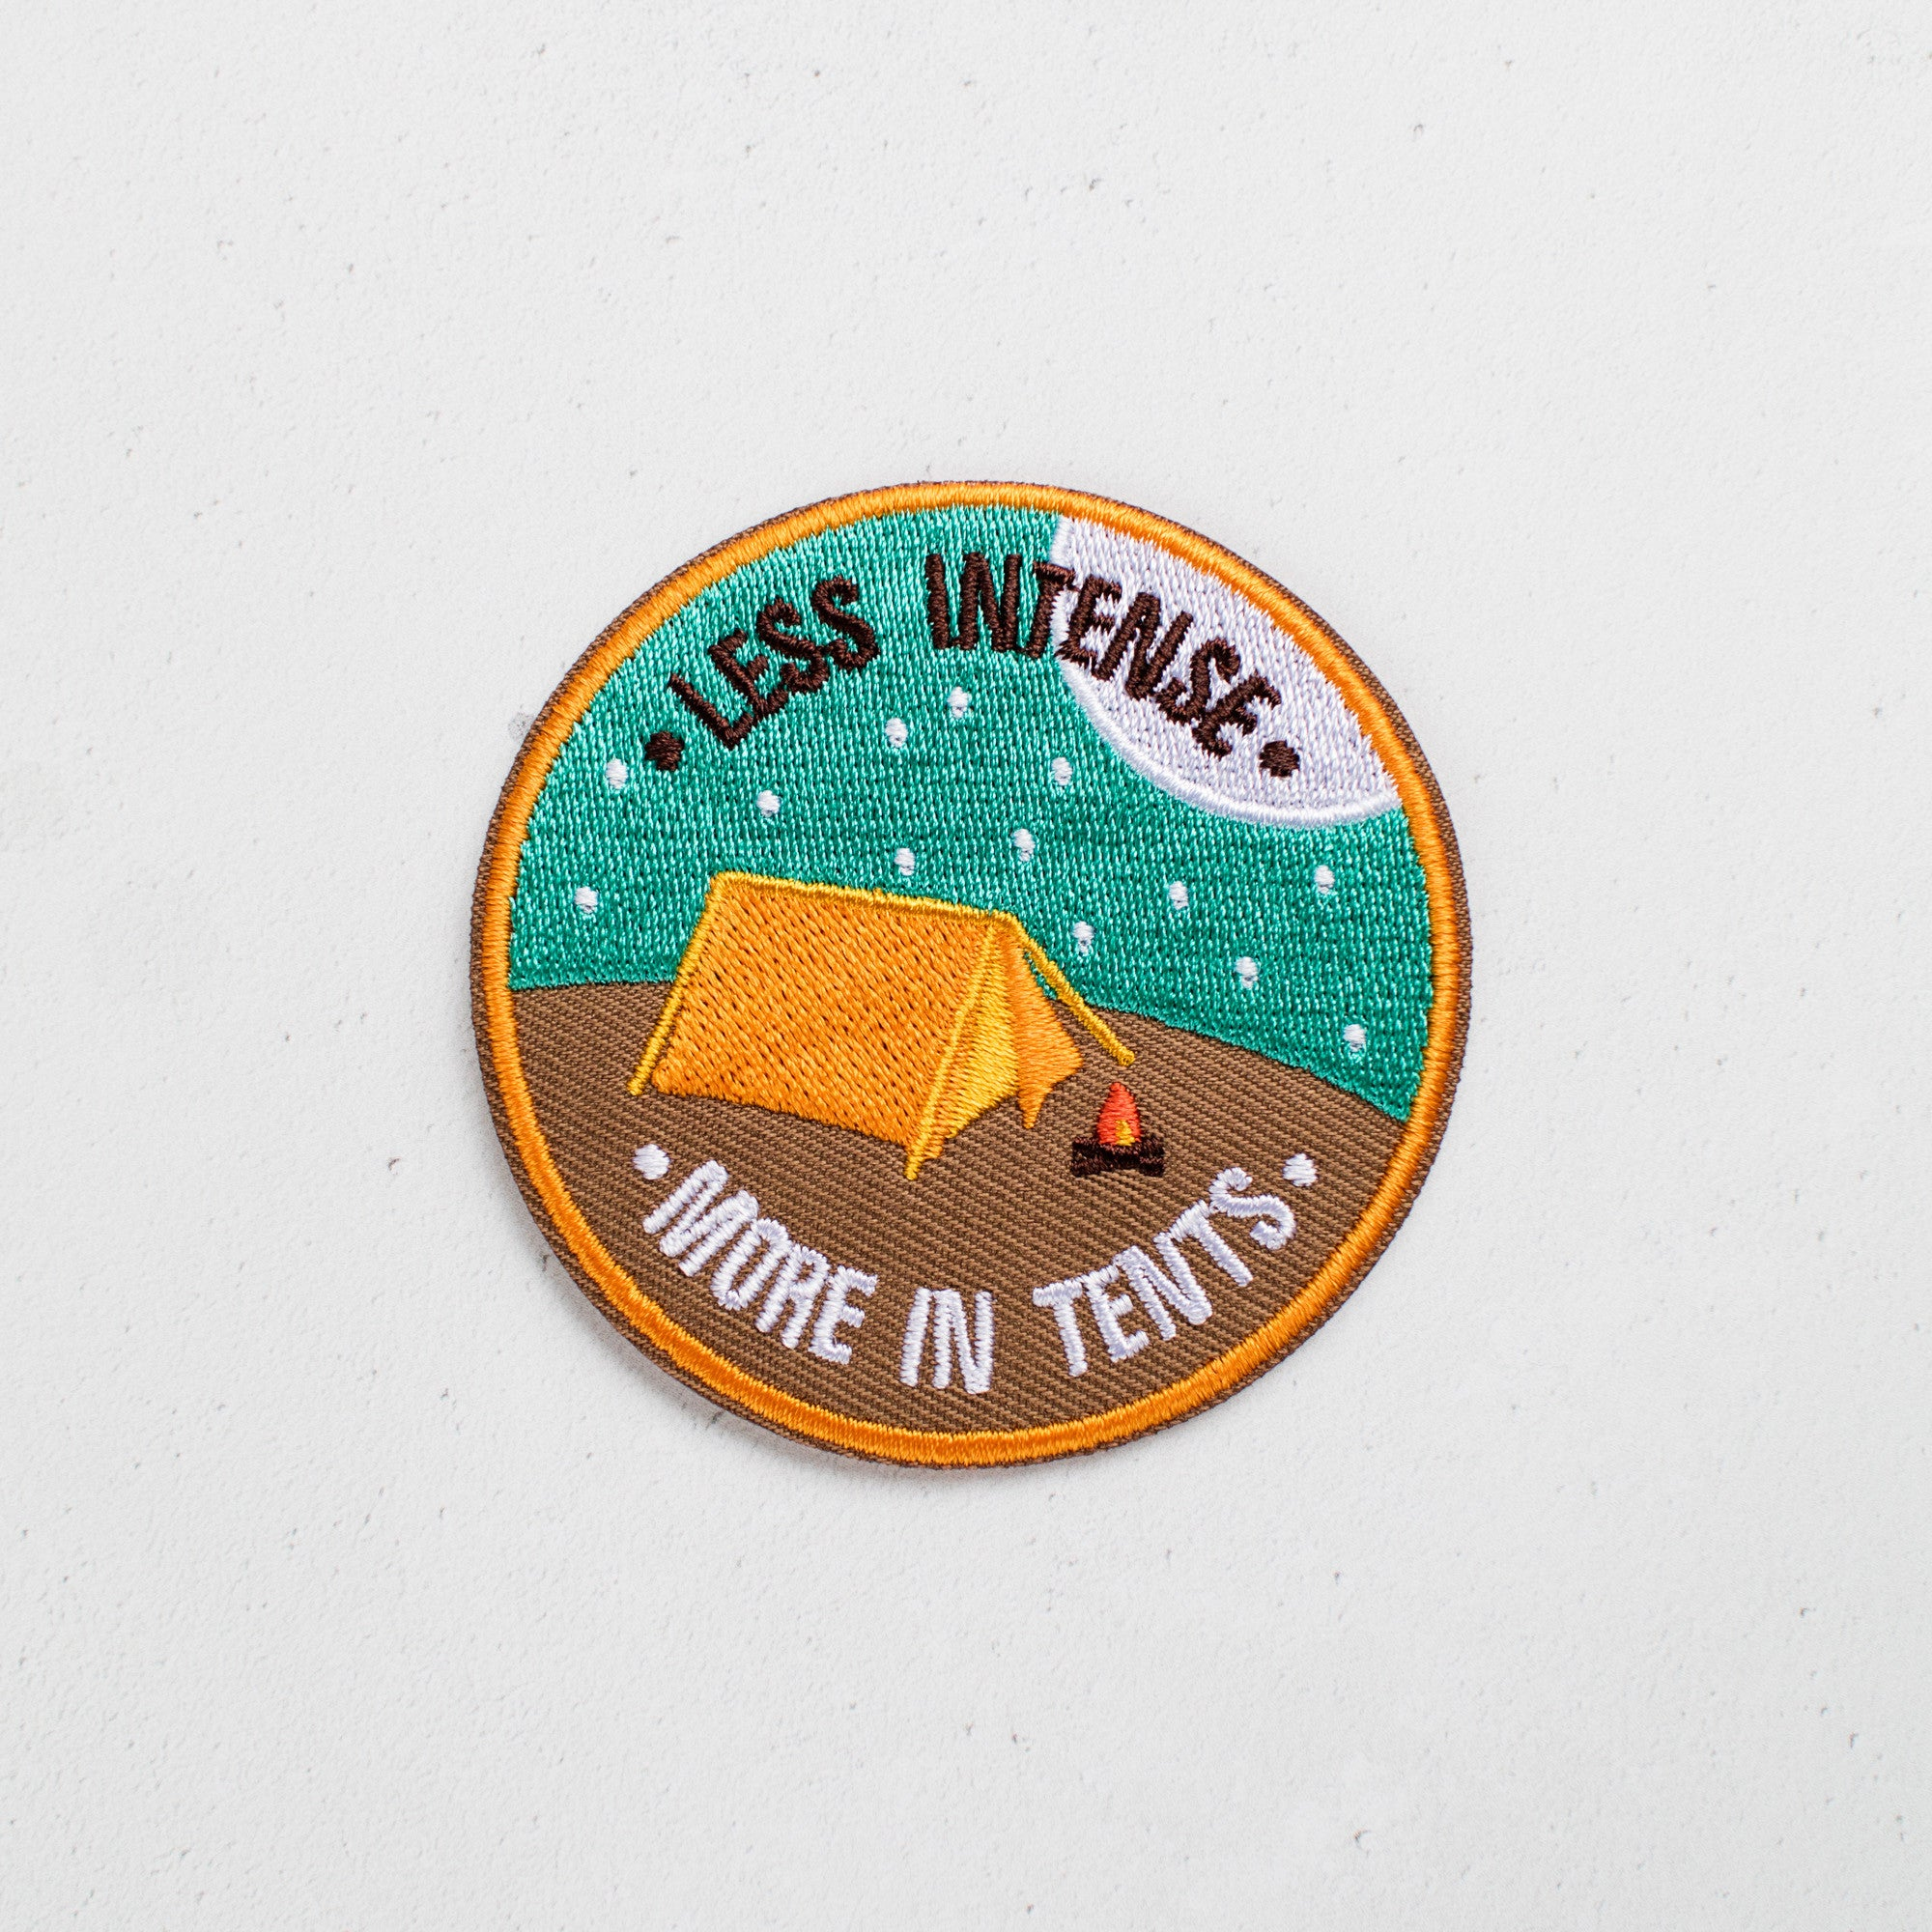 ... Less Intense More In Tents Patch ... & Less Intense More In Tents Patch | Finest Imaginary